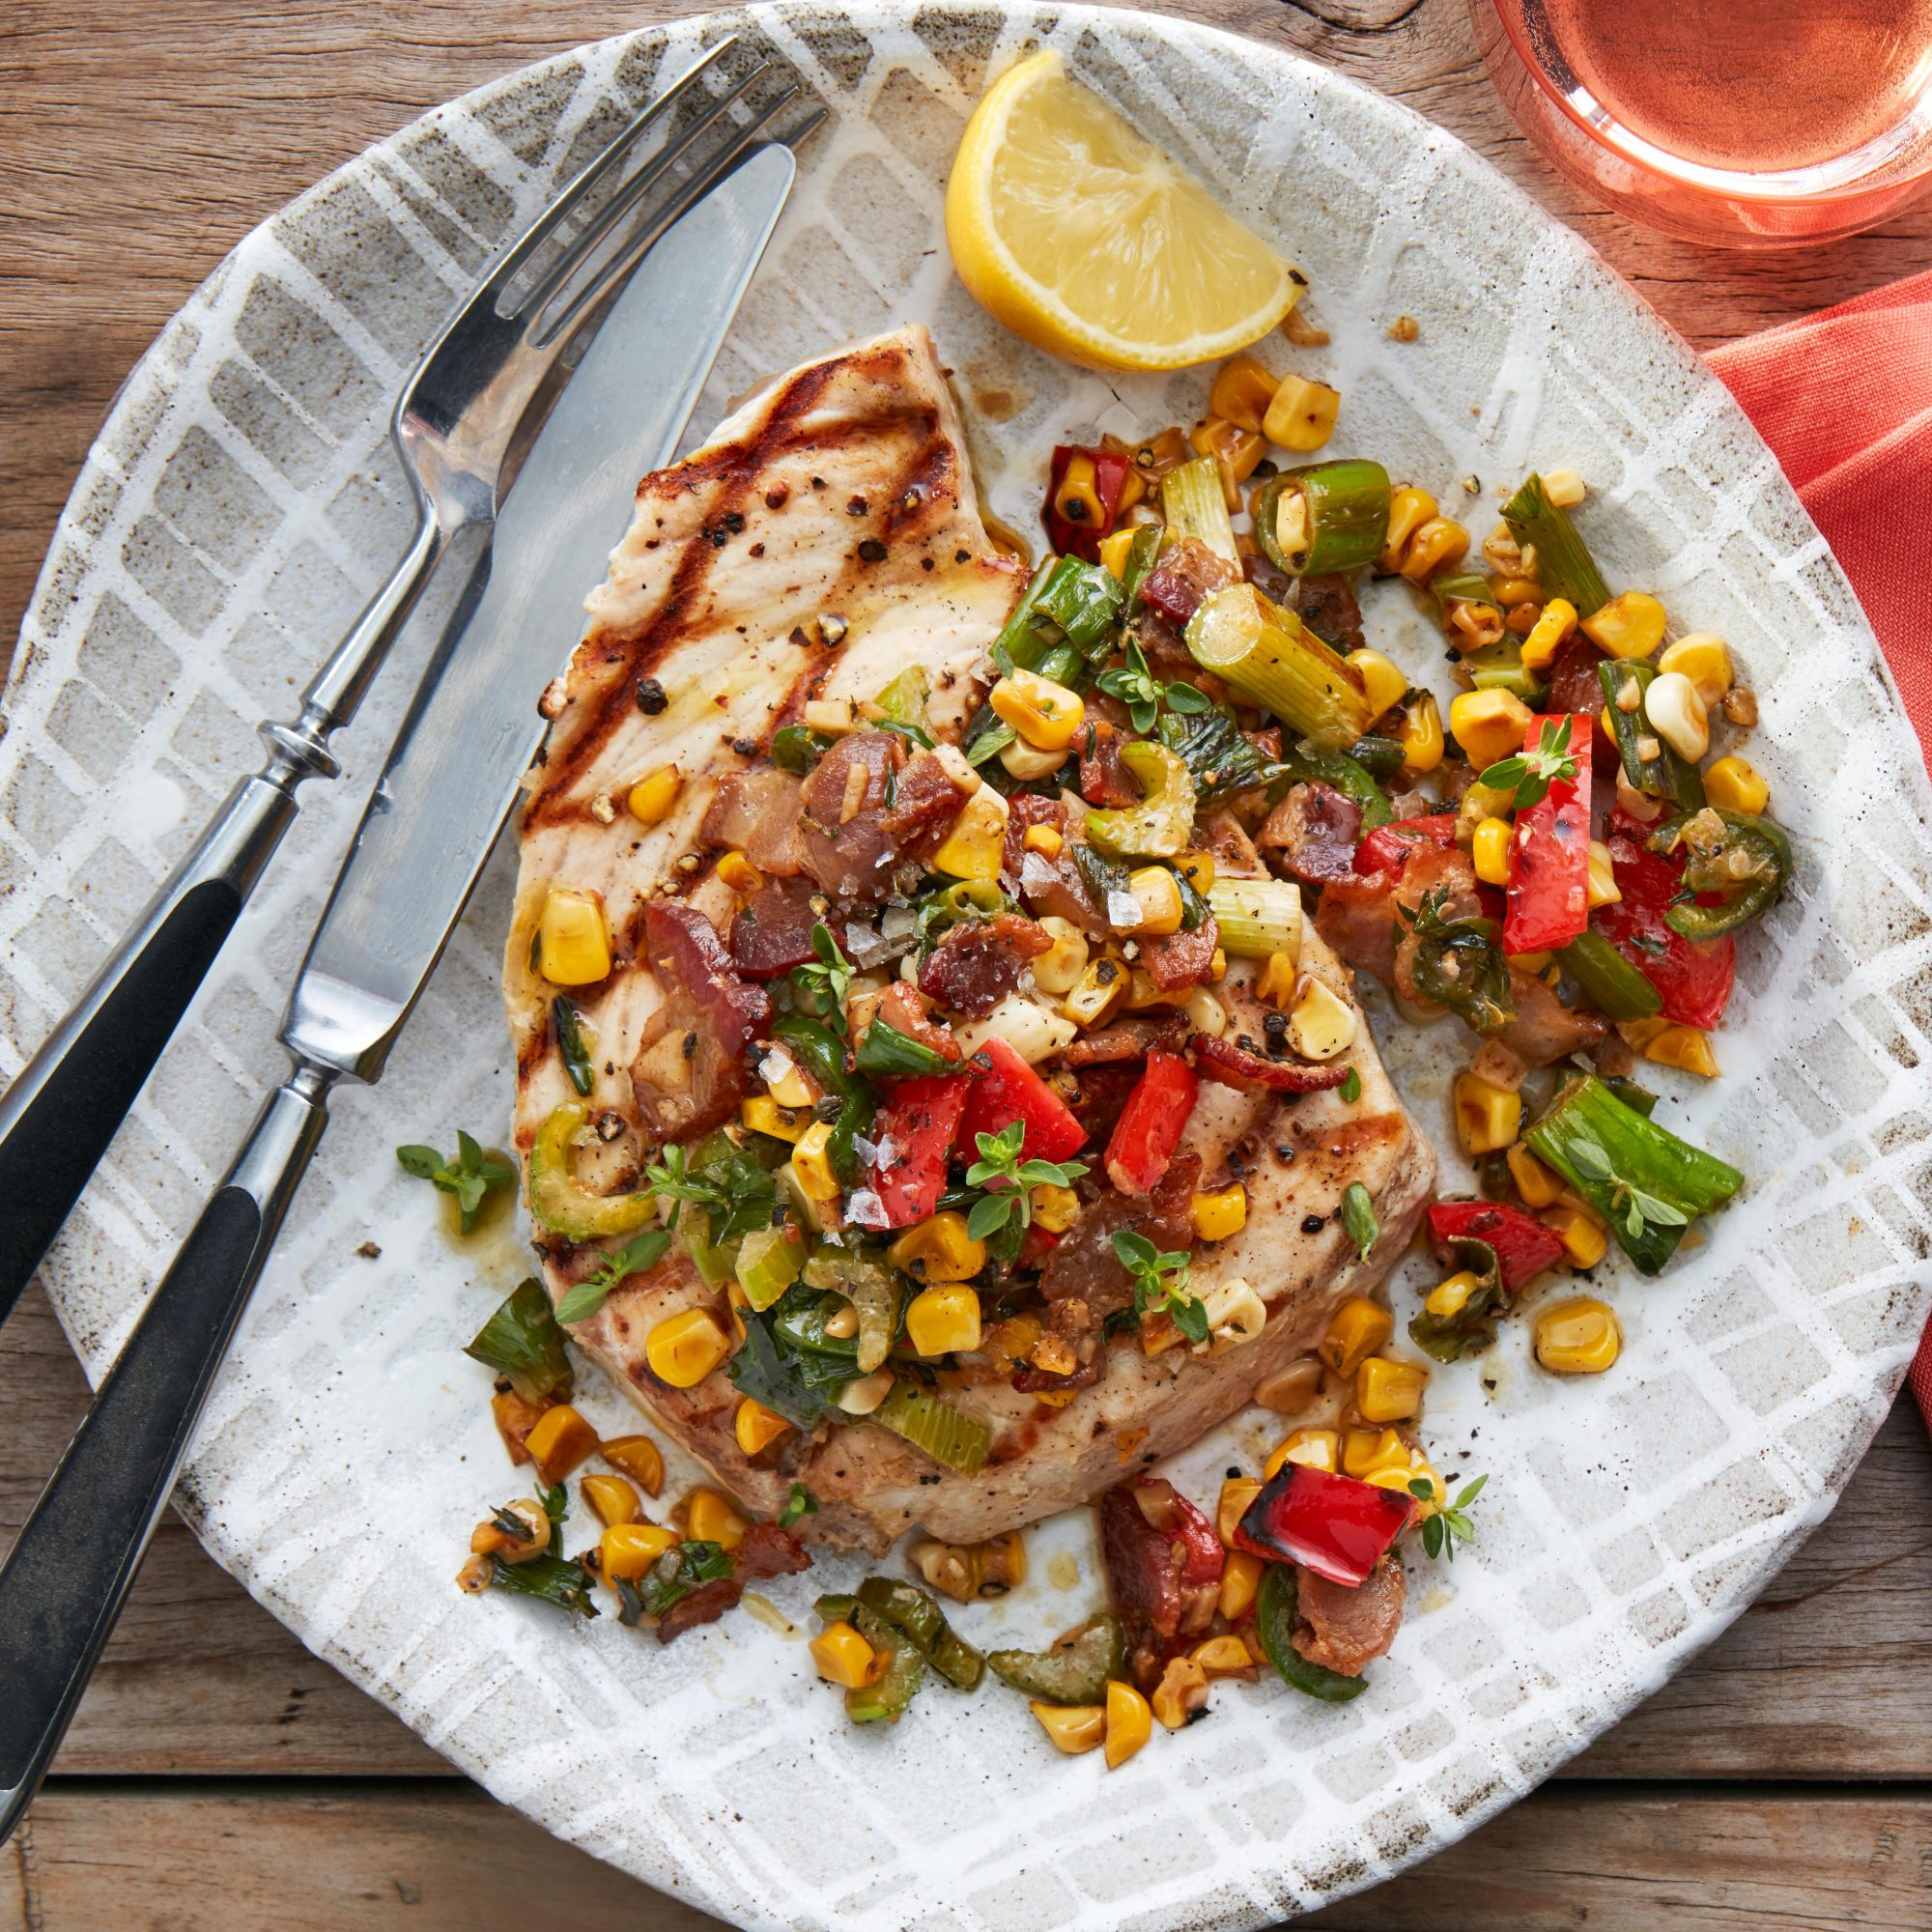 Grilled Fish with Maque Choux